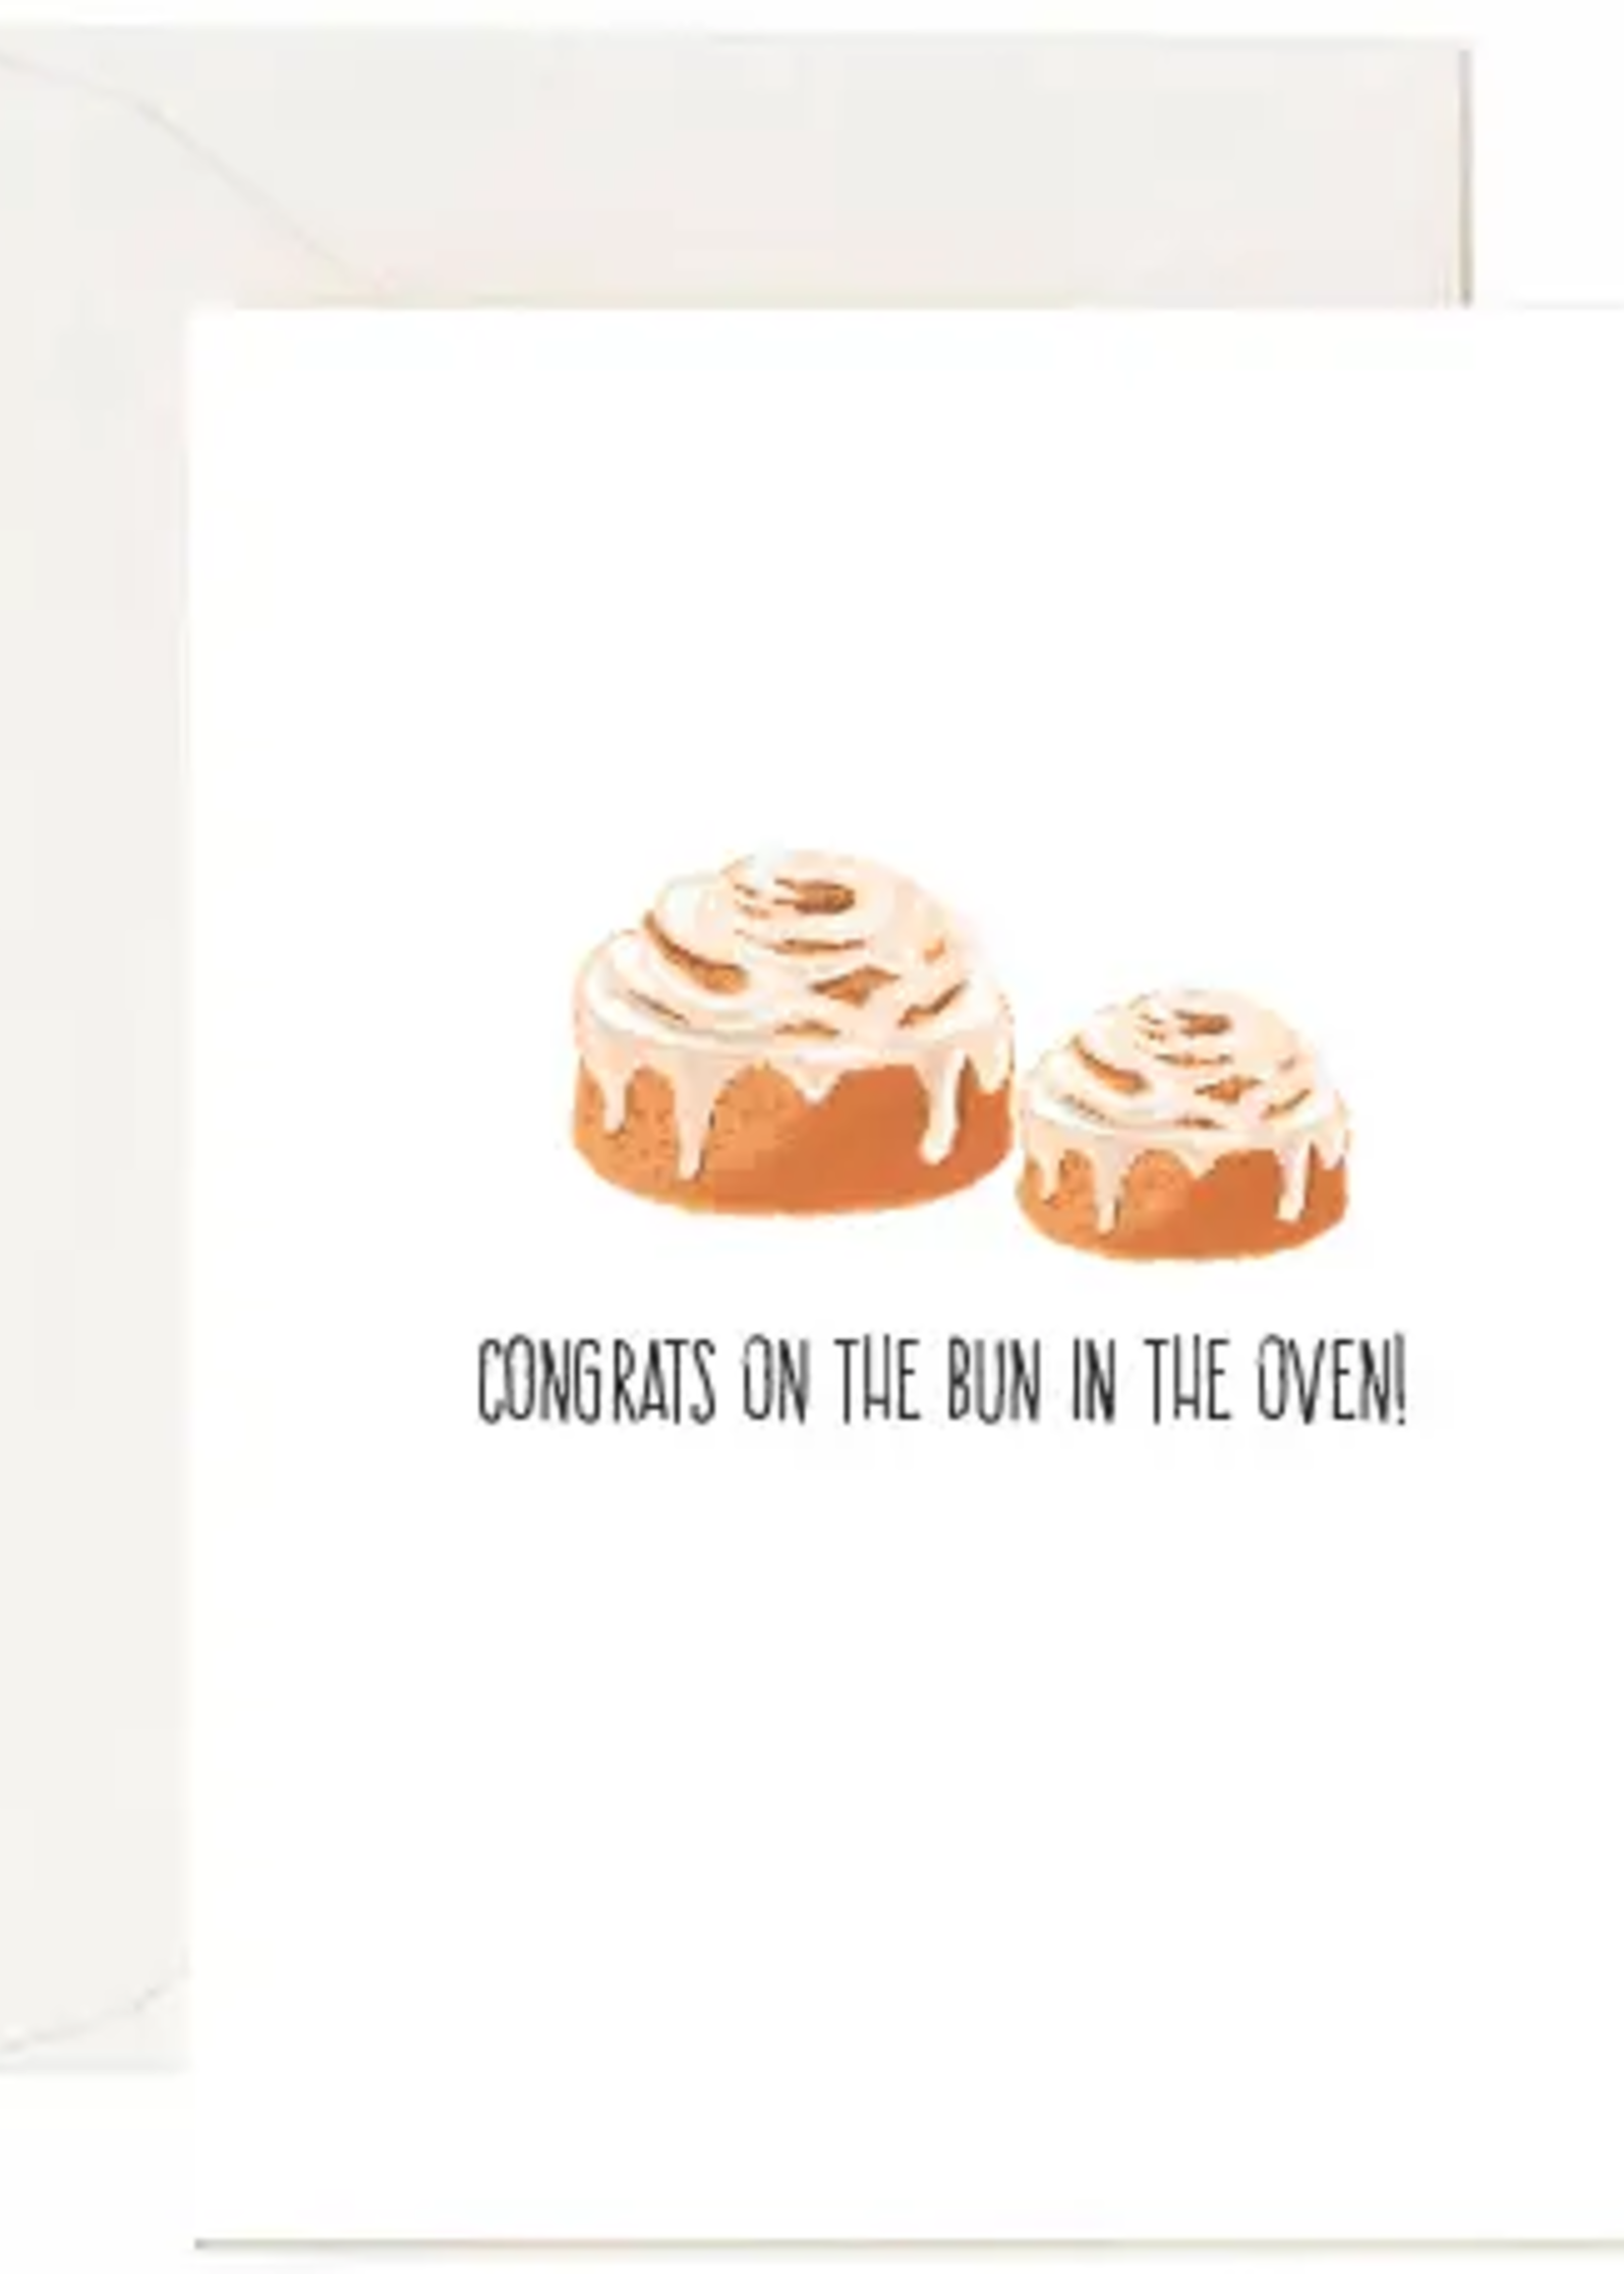 Jaybee Design Congrats On The Bun In The Oven!